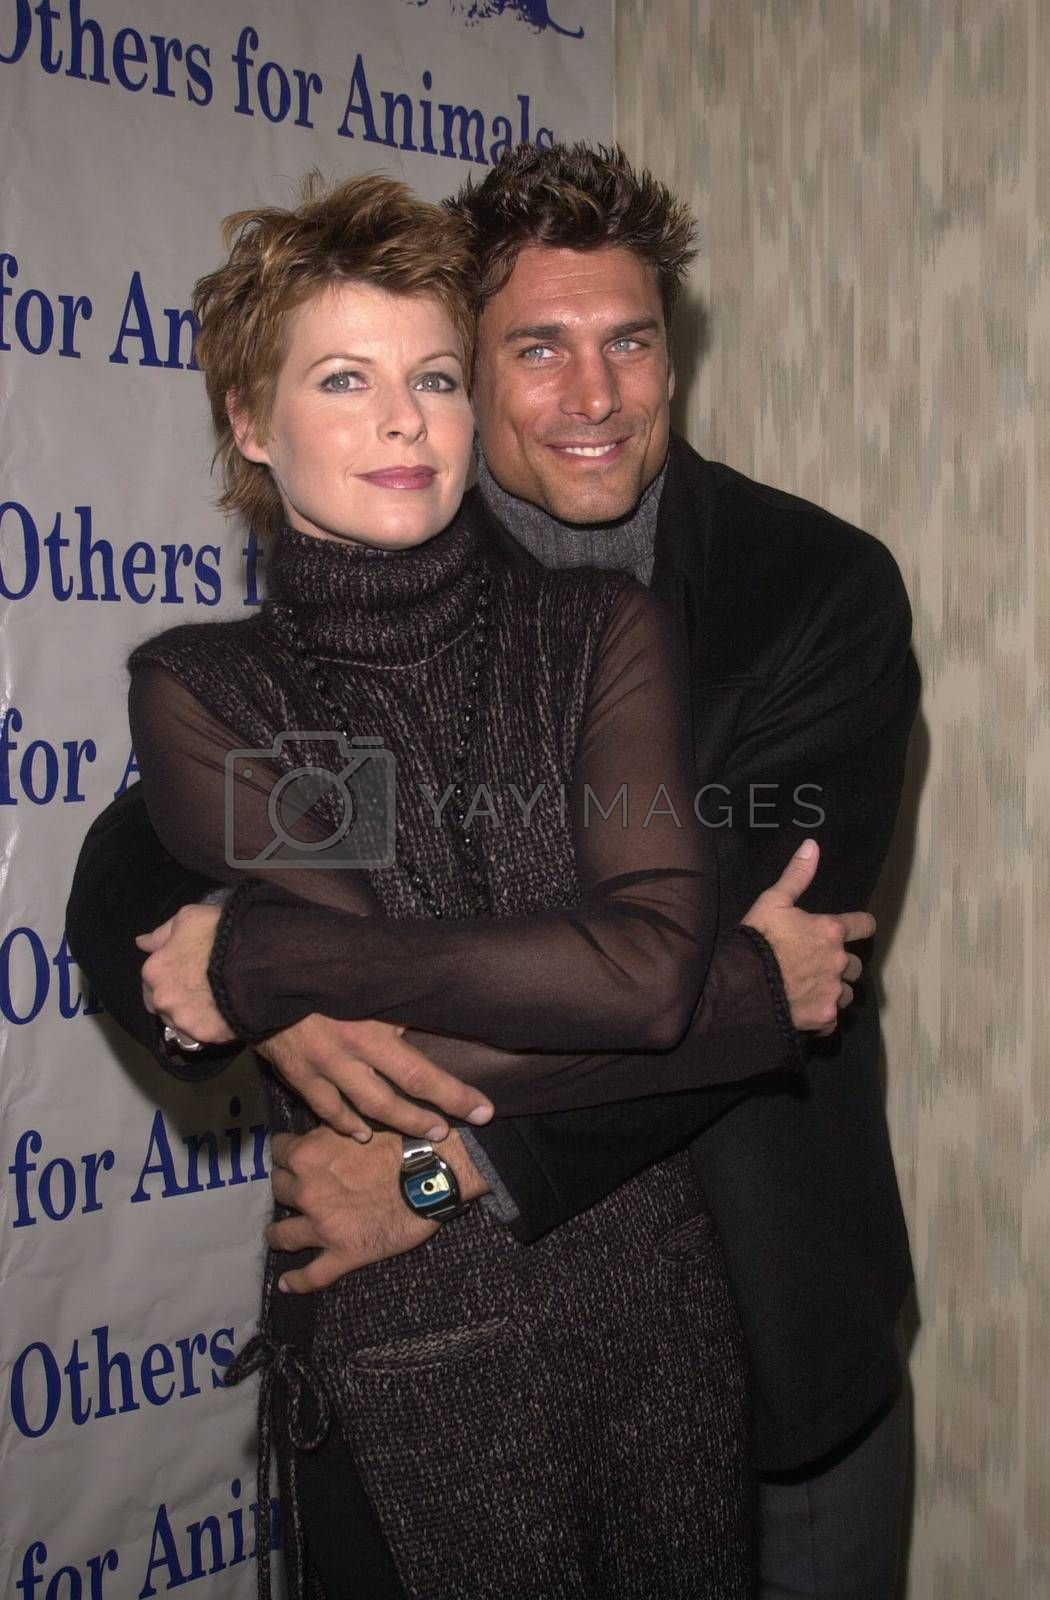 Dana Sparks and James Hyde at the Actors and Others for Animals benefit, Universal City, 10-21-00